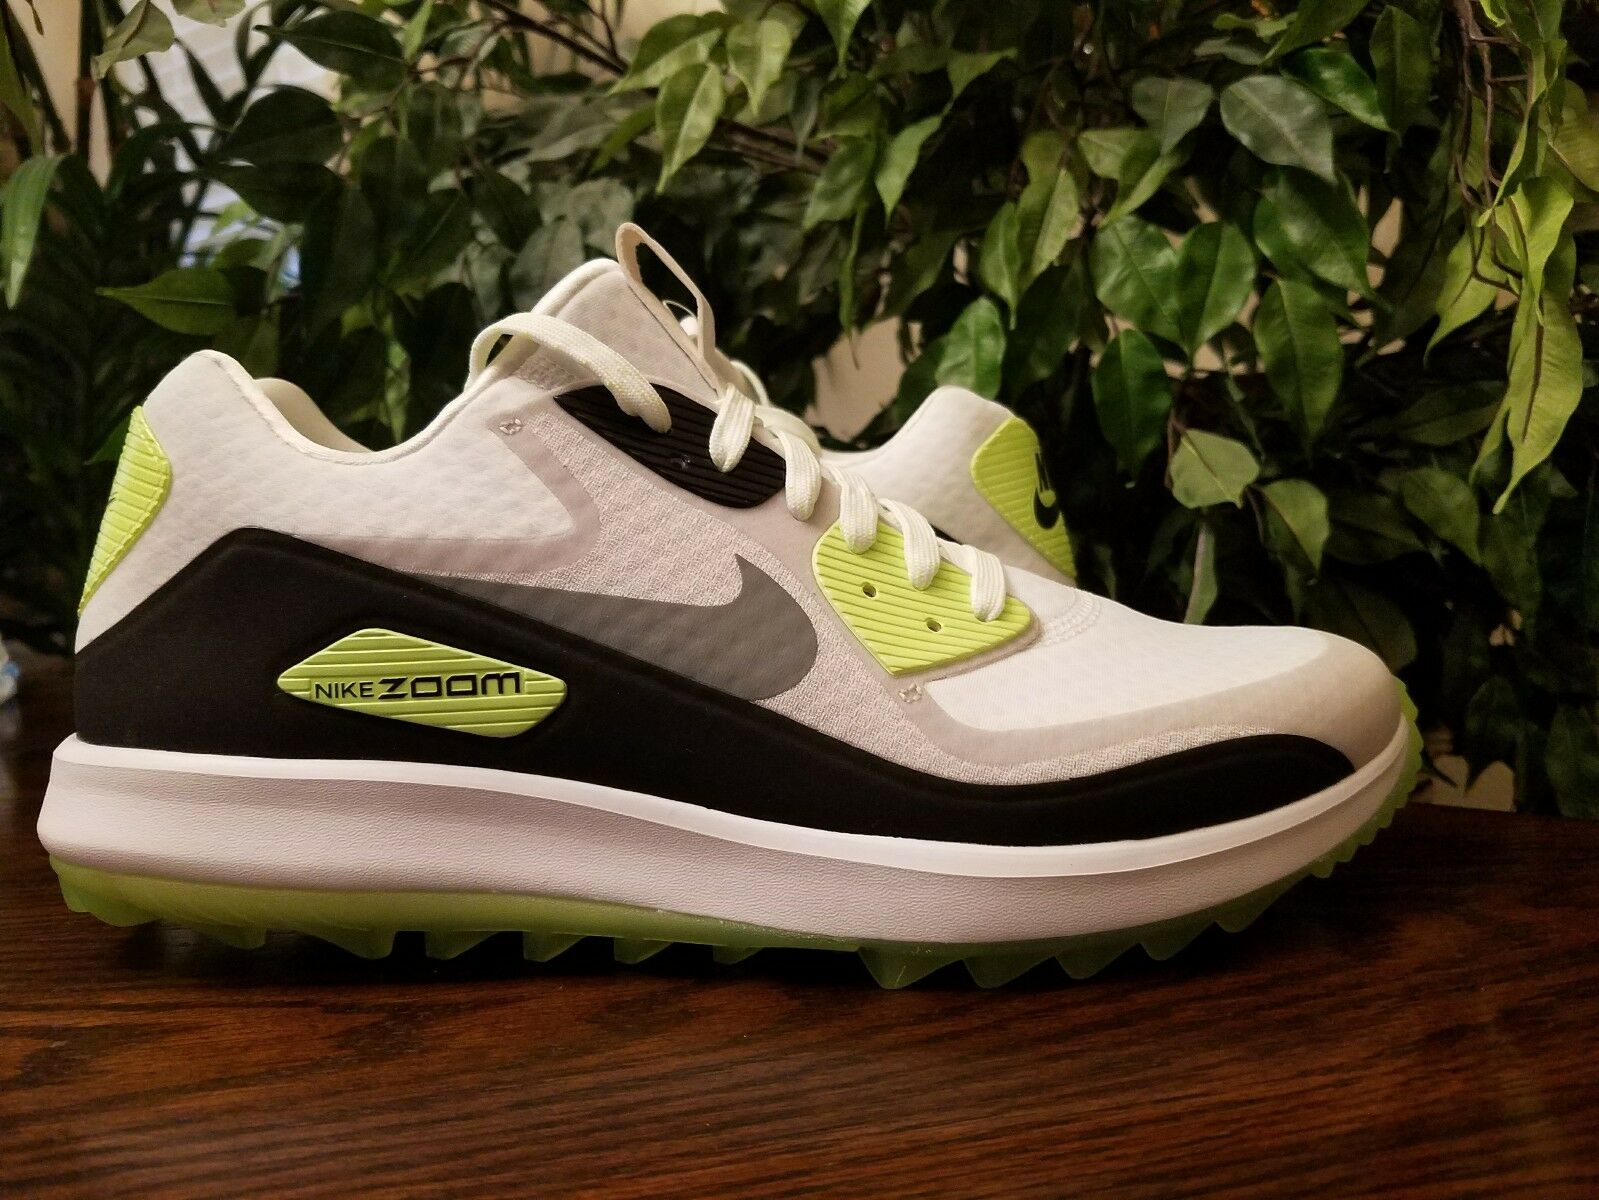 WE ARE SOLD OUT THESE Air Zoom 90 IT Golf Shoes 844569 102 THESPOT917